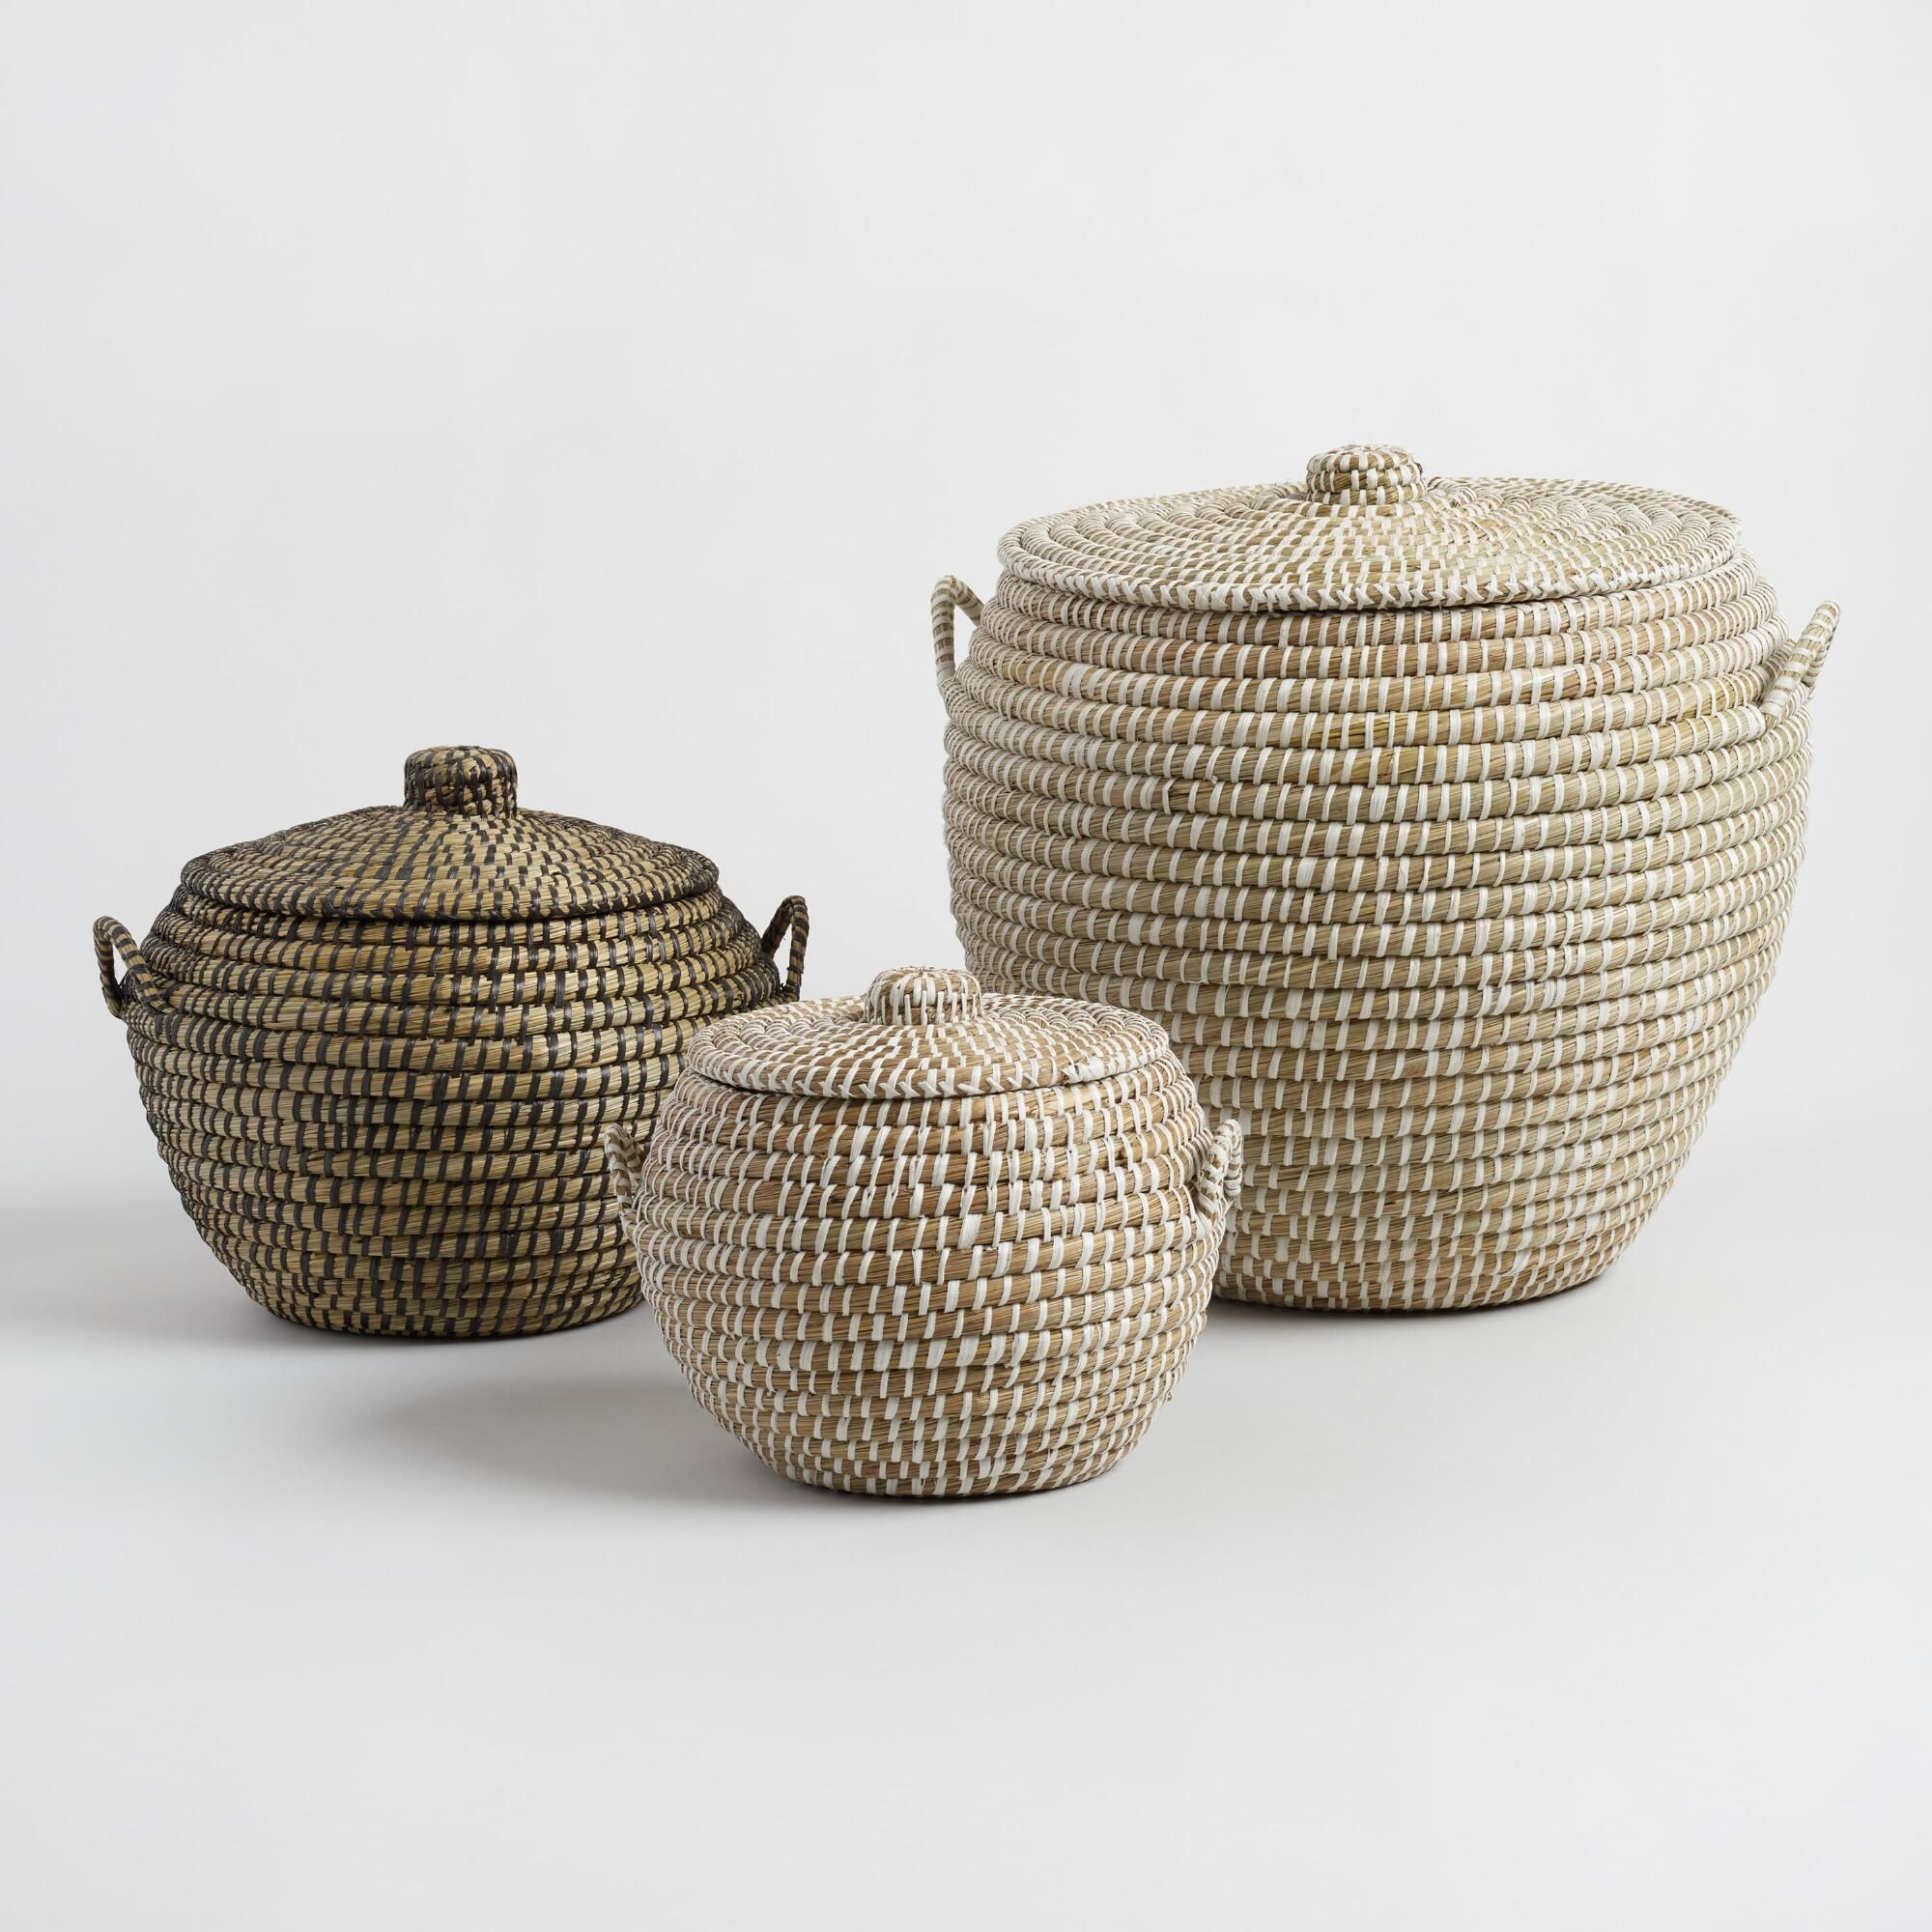 Seagrass Penelope Tote Baskets with Lids | decorative accessories ...